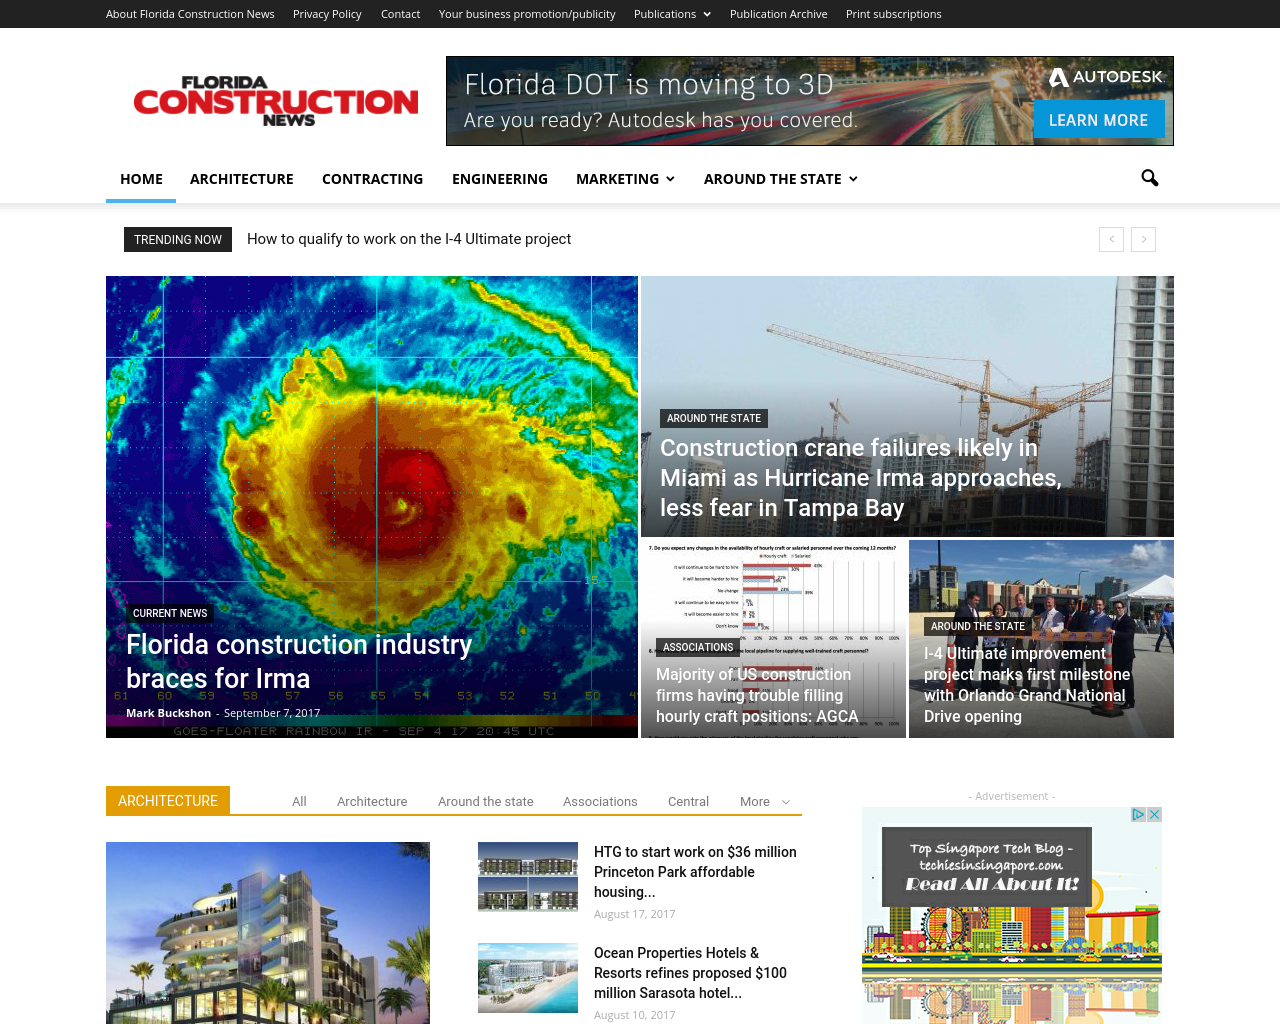 Florida-Construction-News-Advertising-Reviews-Pricing